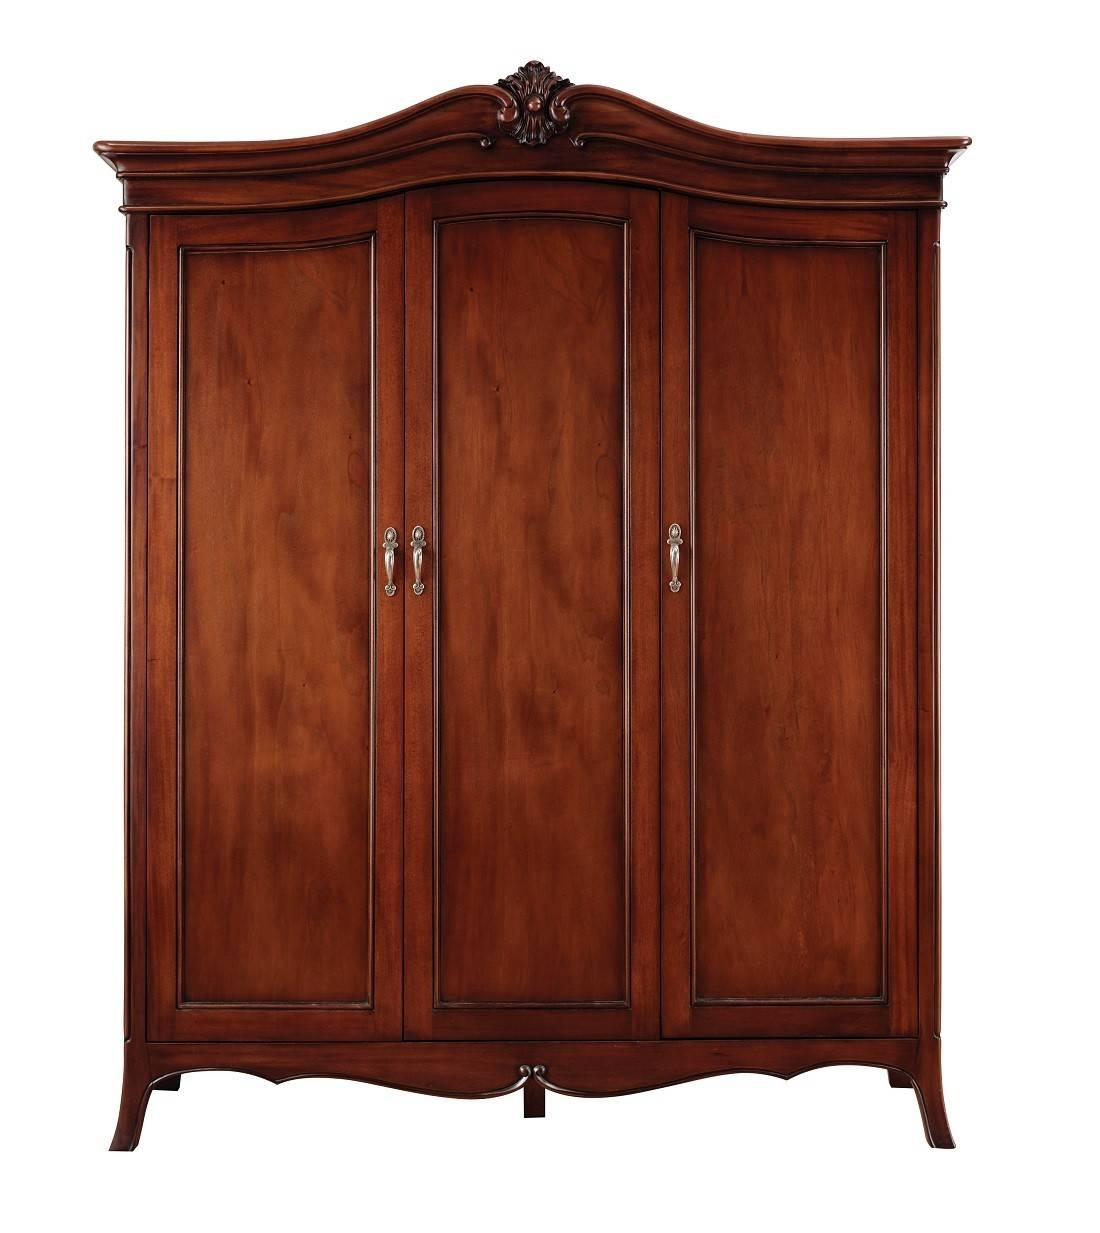 Louis French Solid Mahogany 3 Door Triple Wardrobe | Oak Furniture Uk regarding 3 Door French Wardrobes (Image 11 of 15)